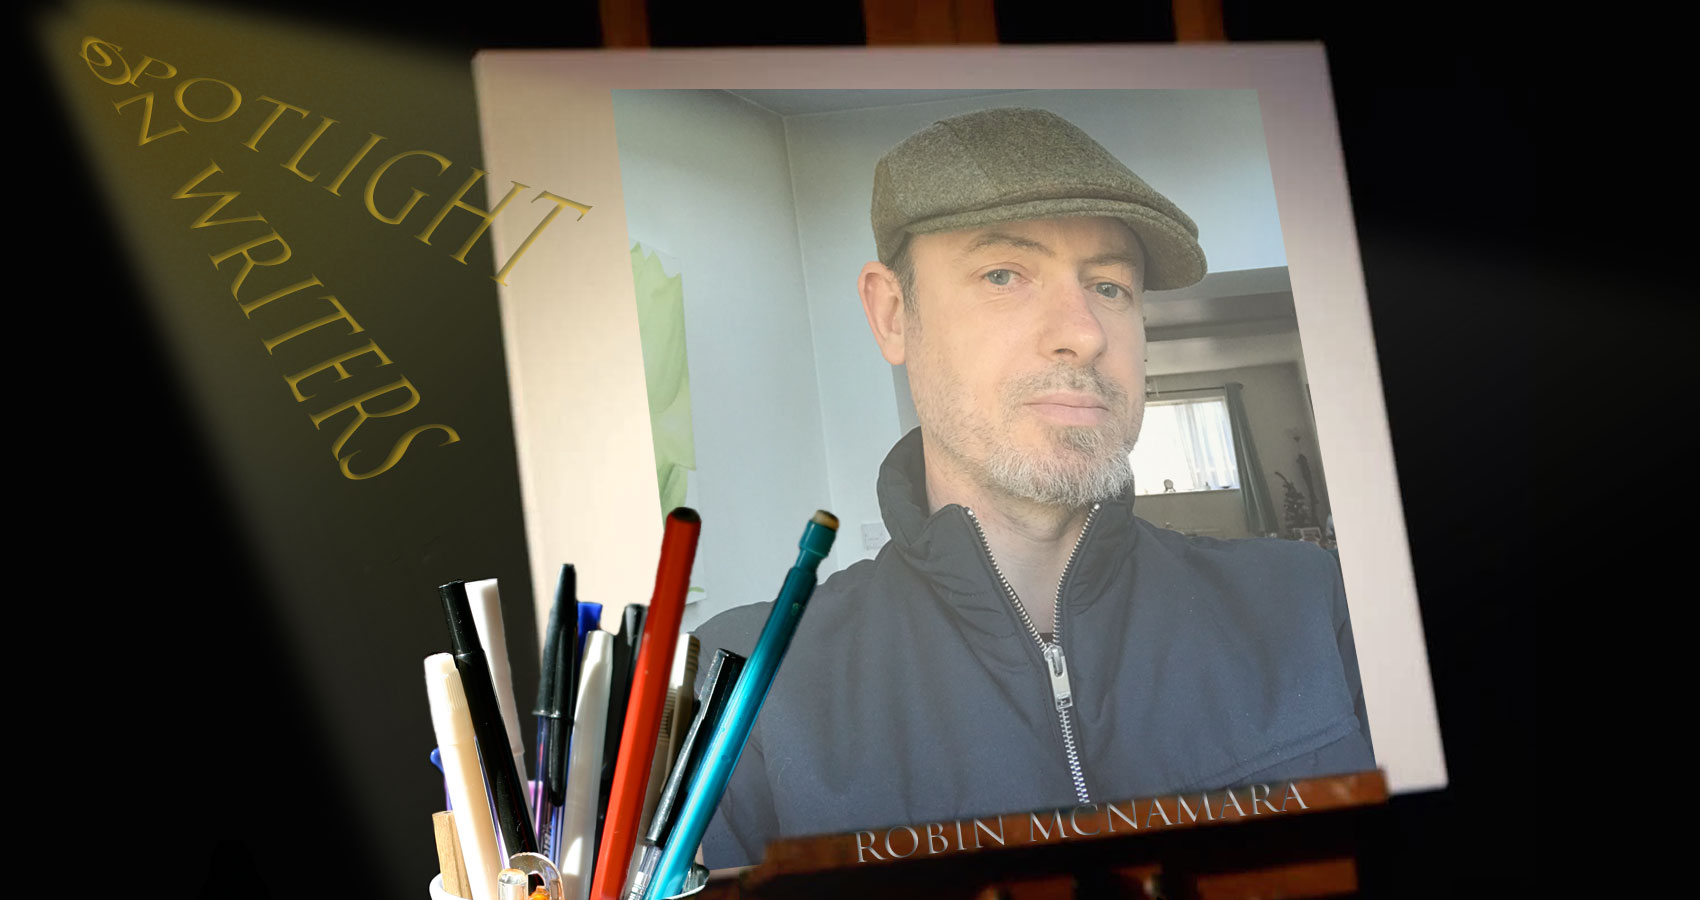 Spotlight On Writers - Robin McNamara at Spillwords.com